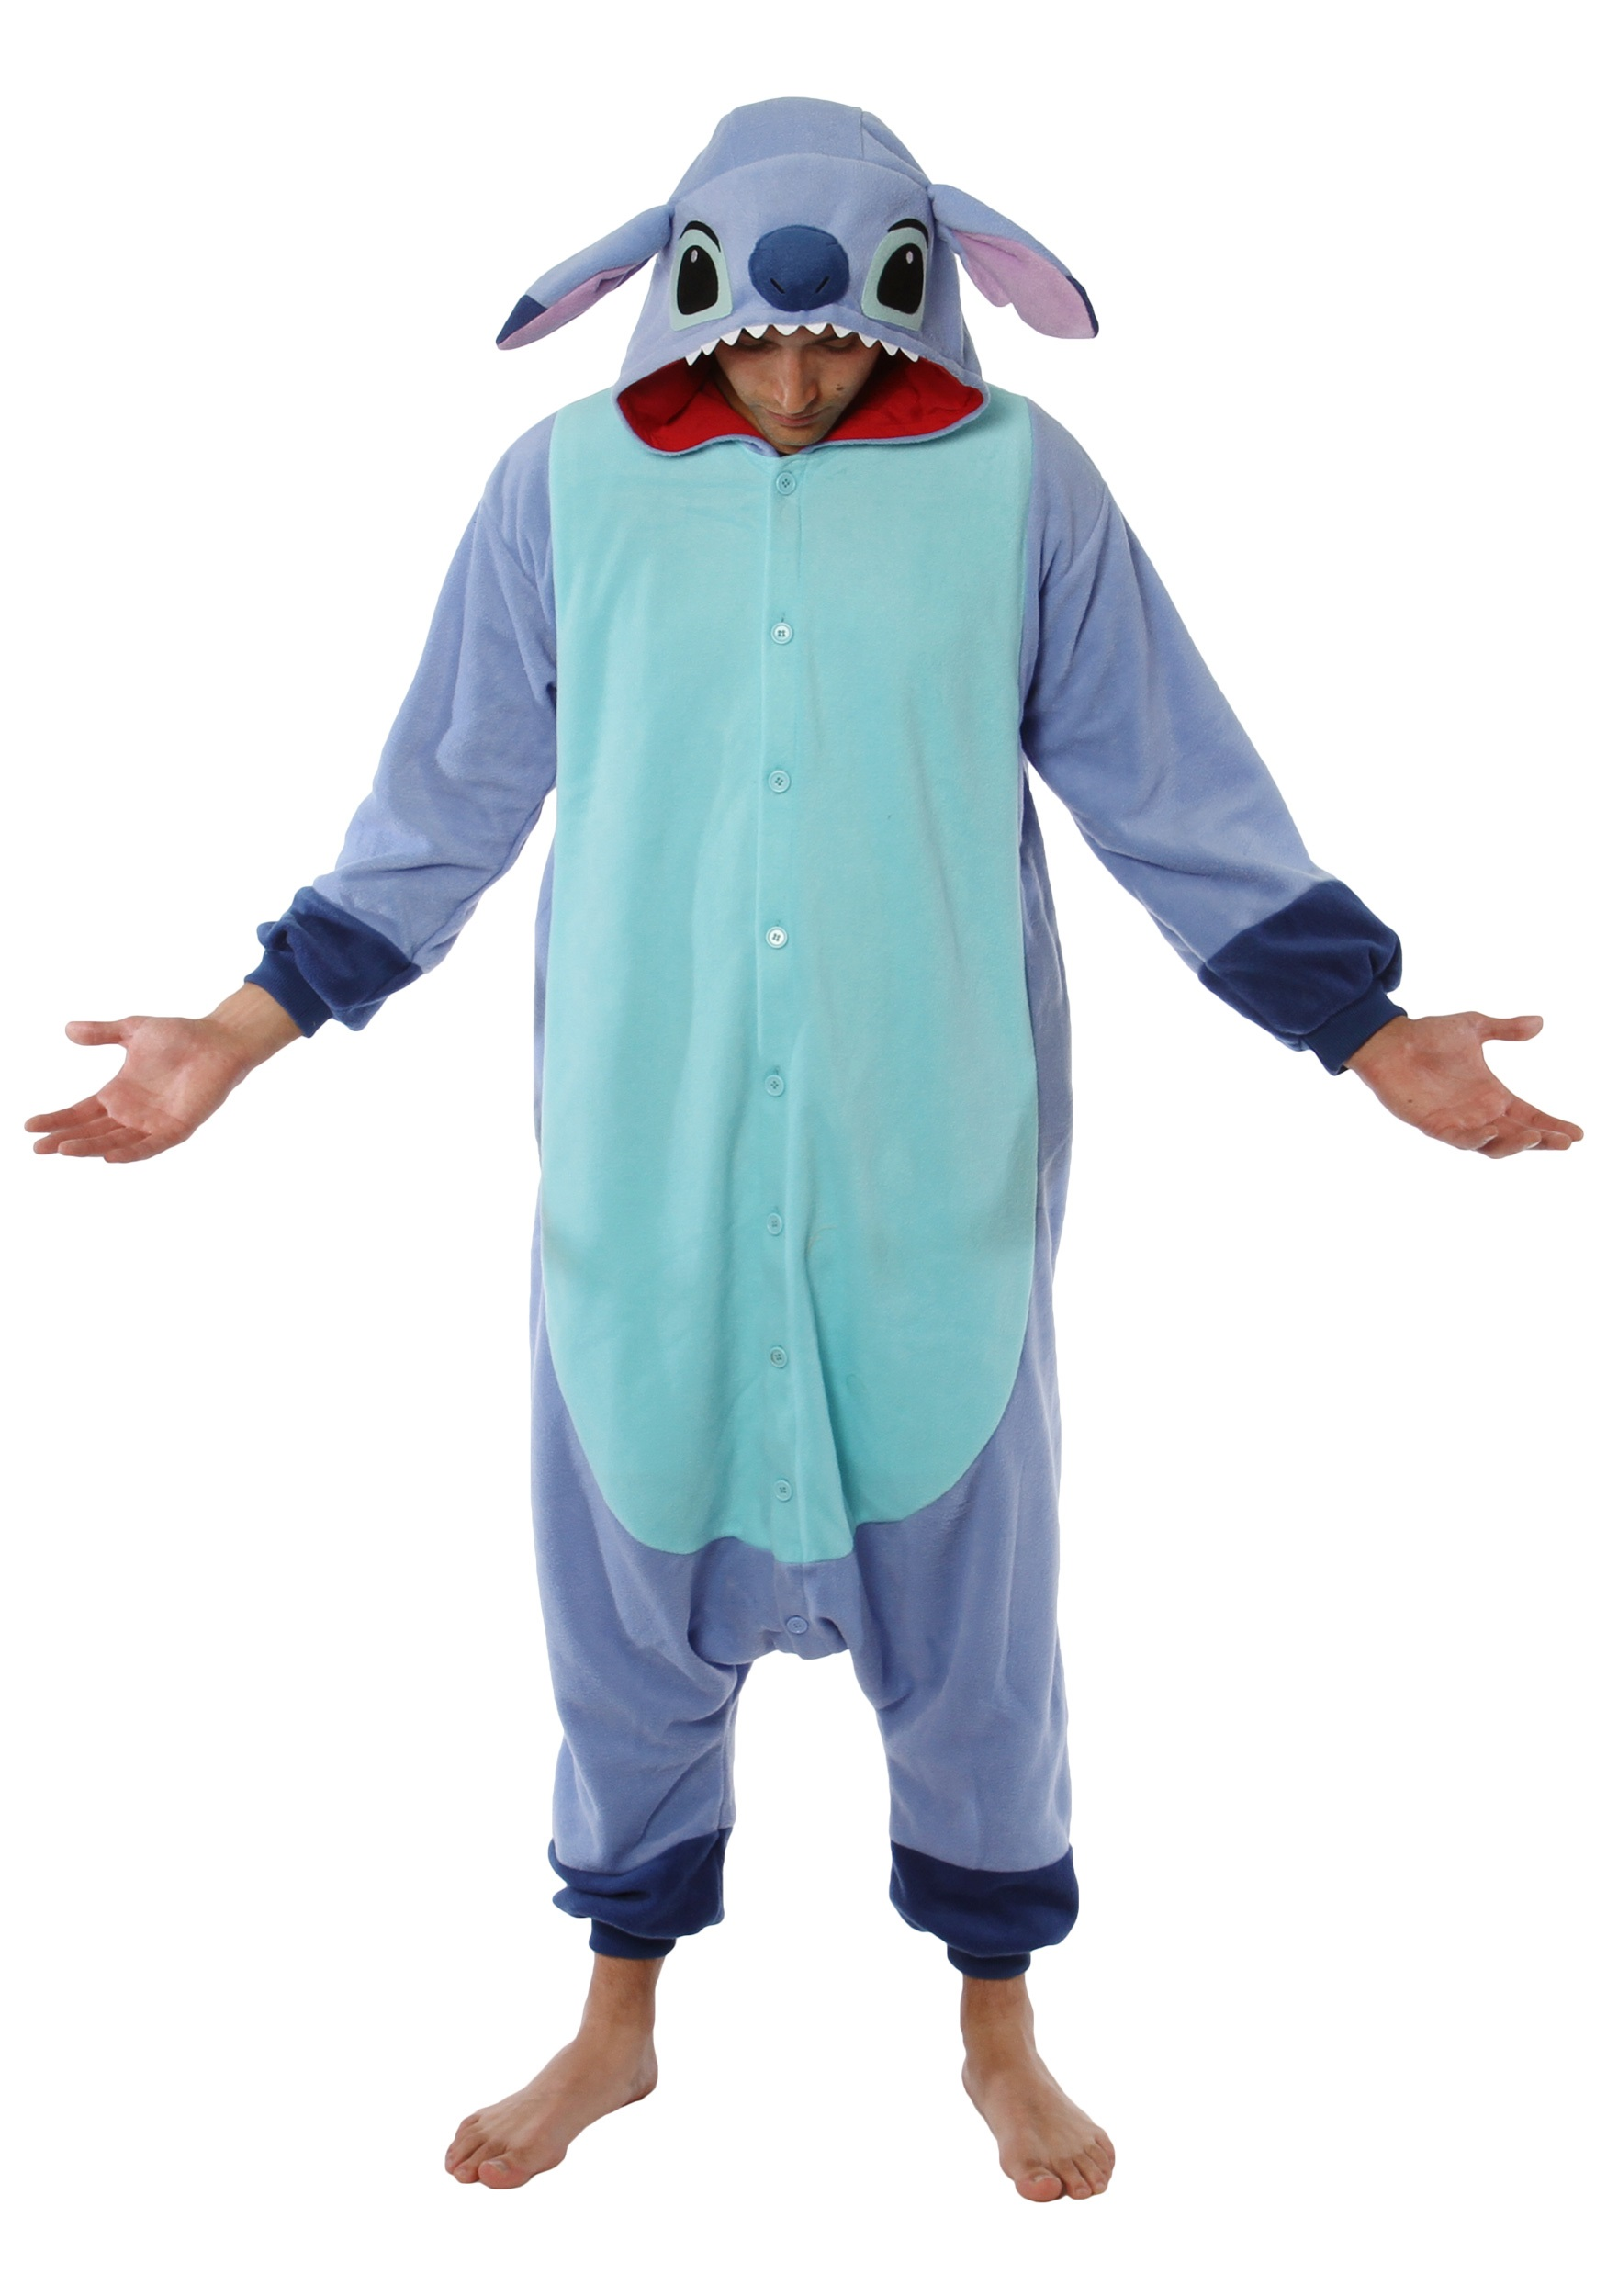 Disney Stitch Pajama Costume - Movie Character Pajama ...